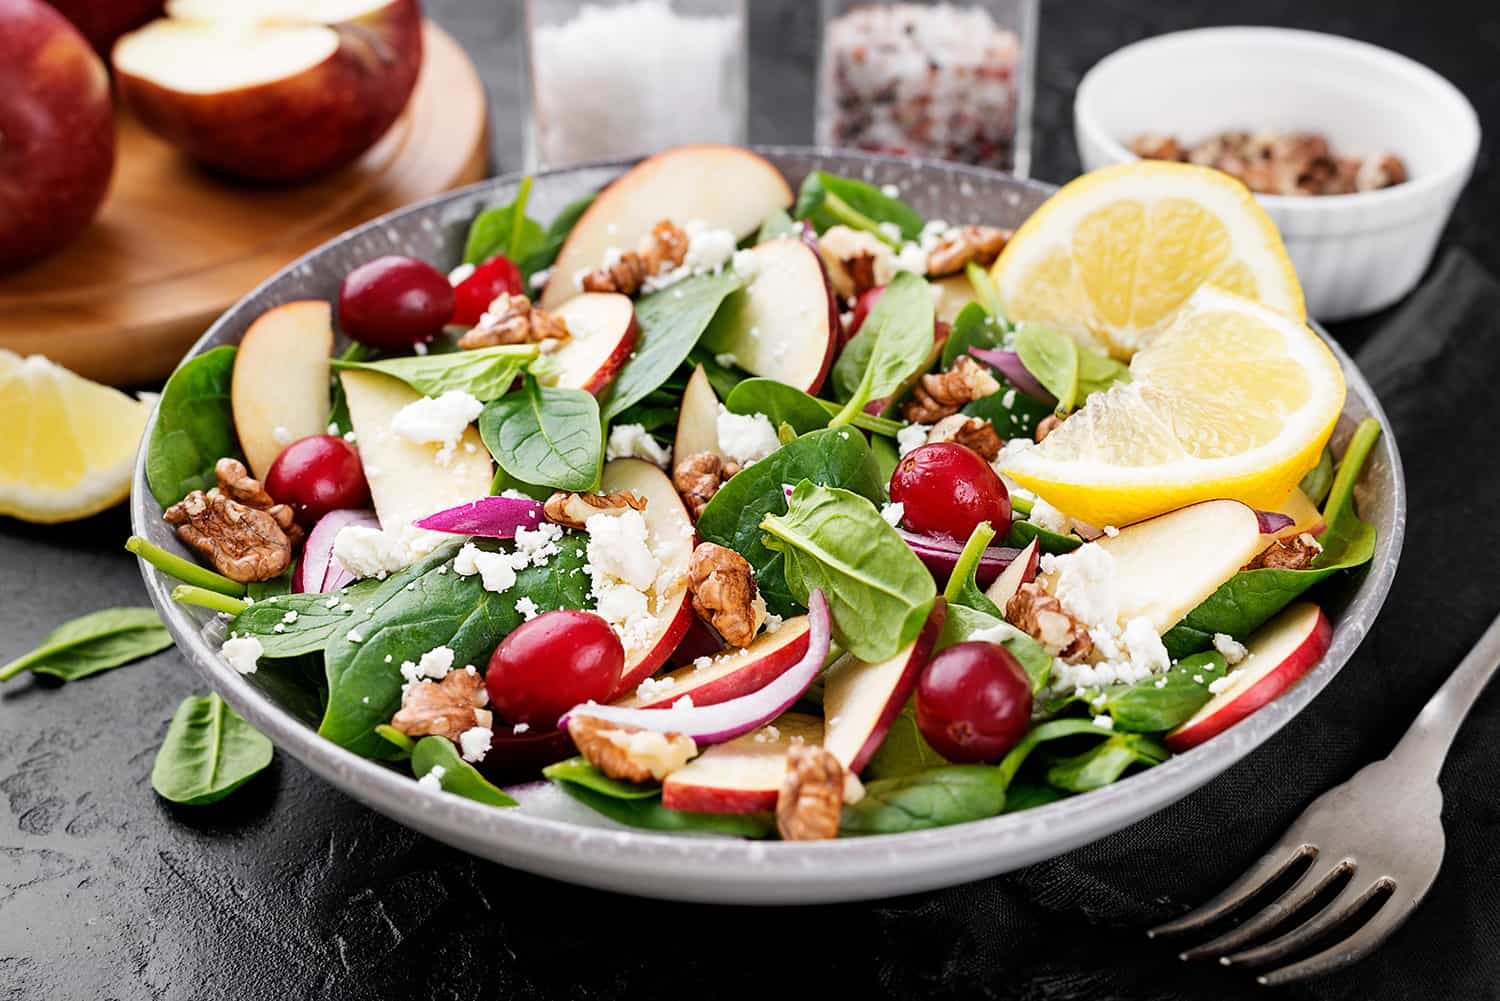 Apples and Grapes Spinach Salad